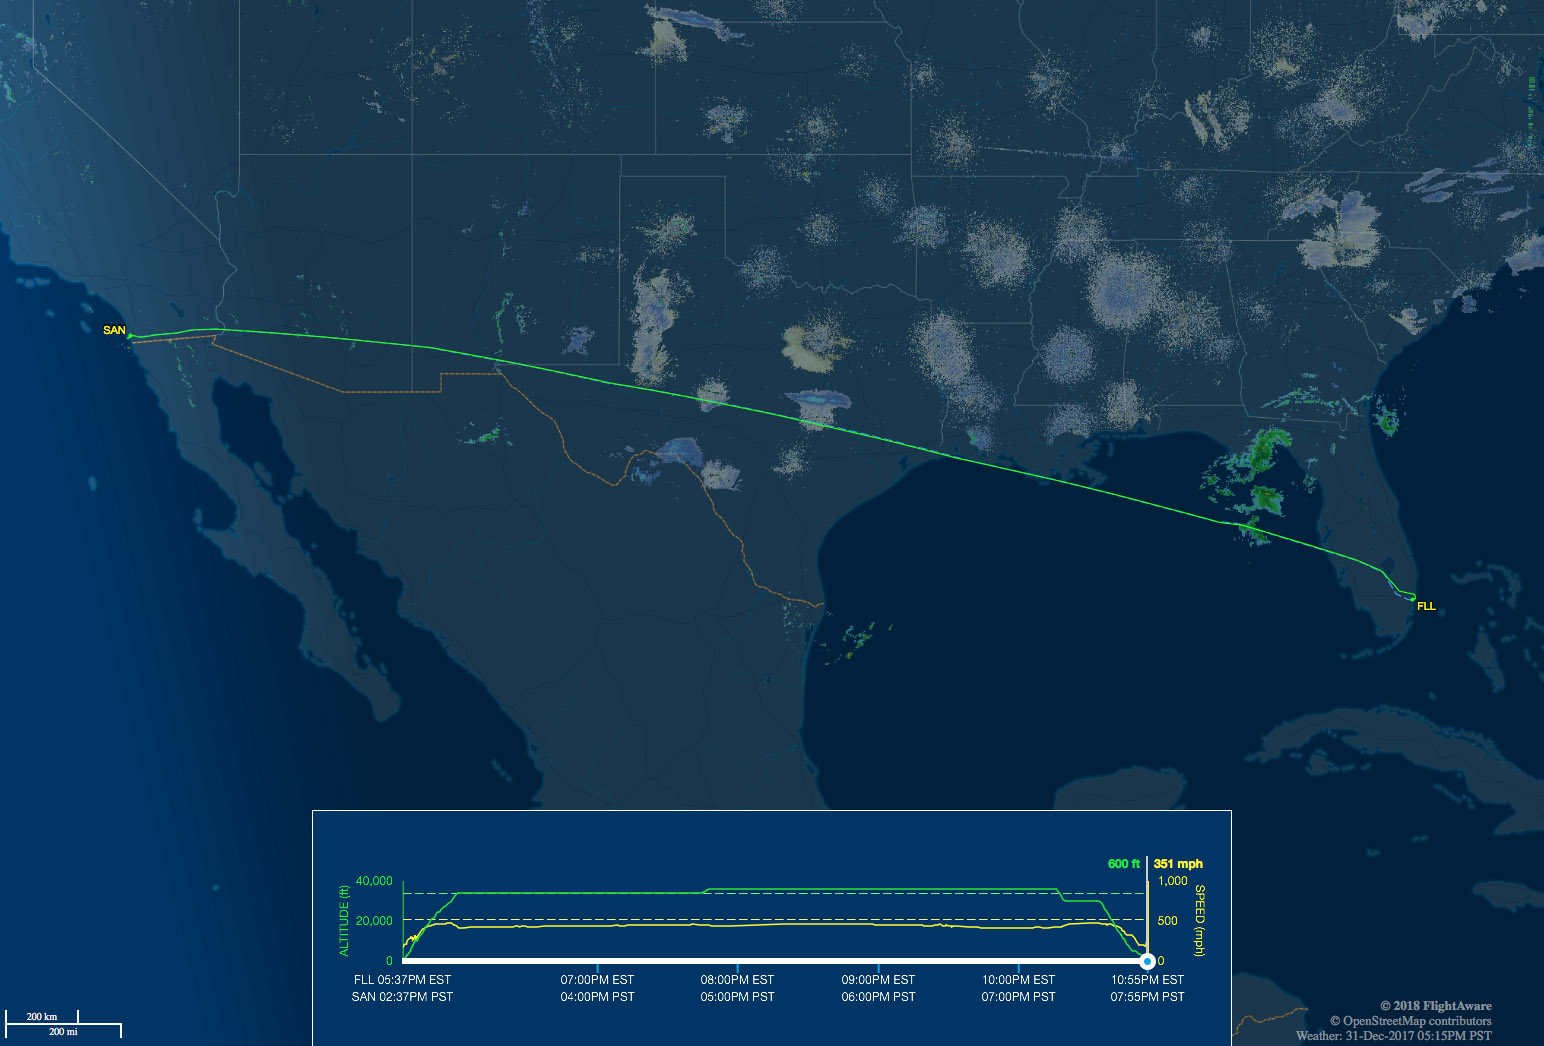 FLL to SAN flight map